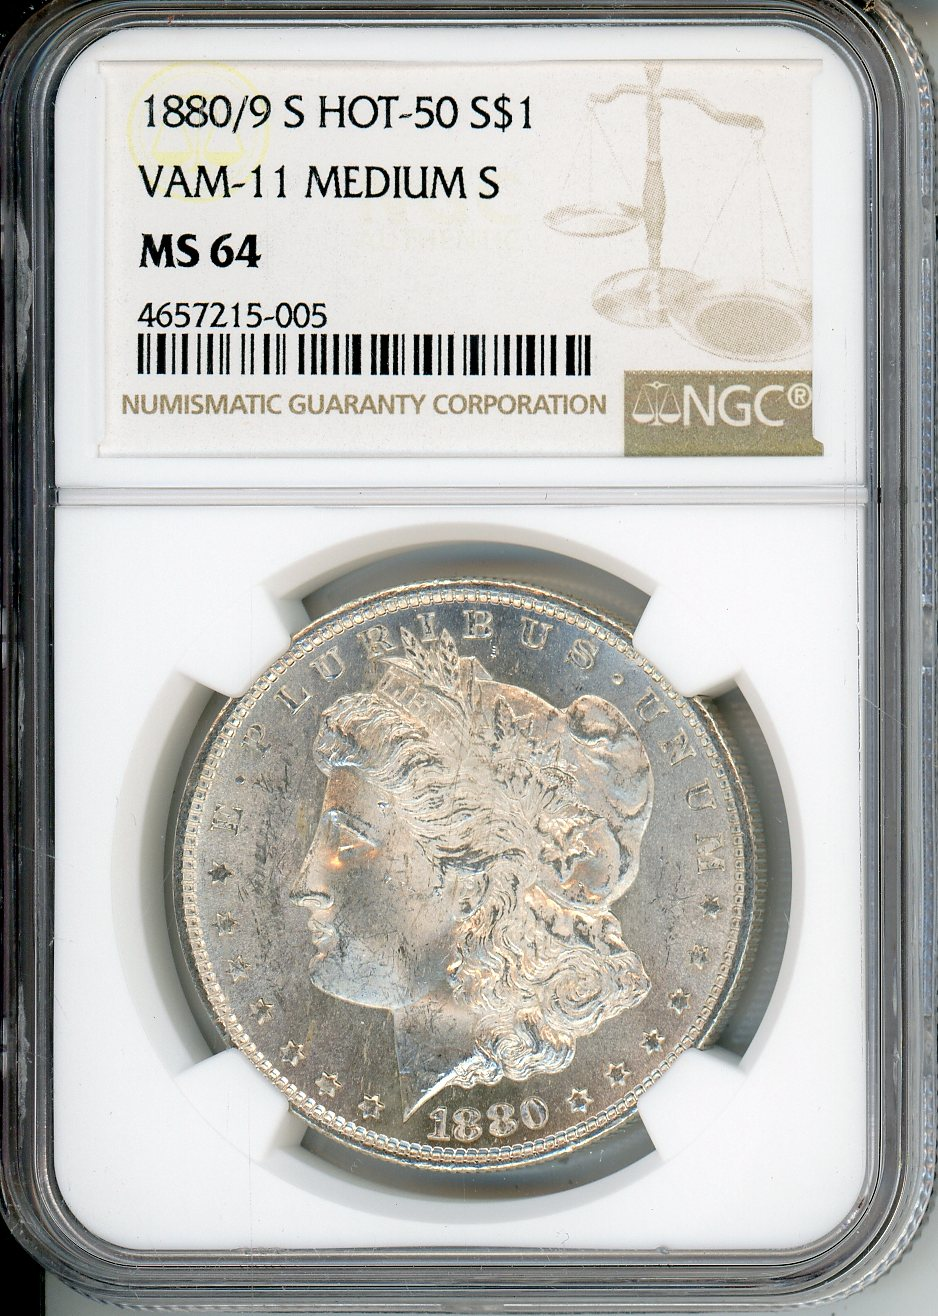 1880/9 S $1 NGC MS64 VAM-11 Medium S Hot 50